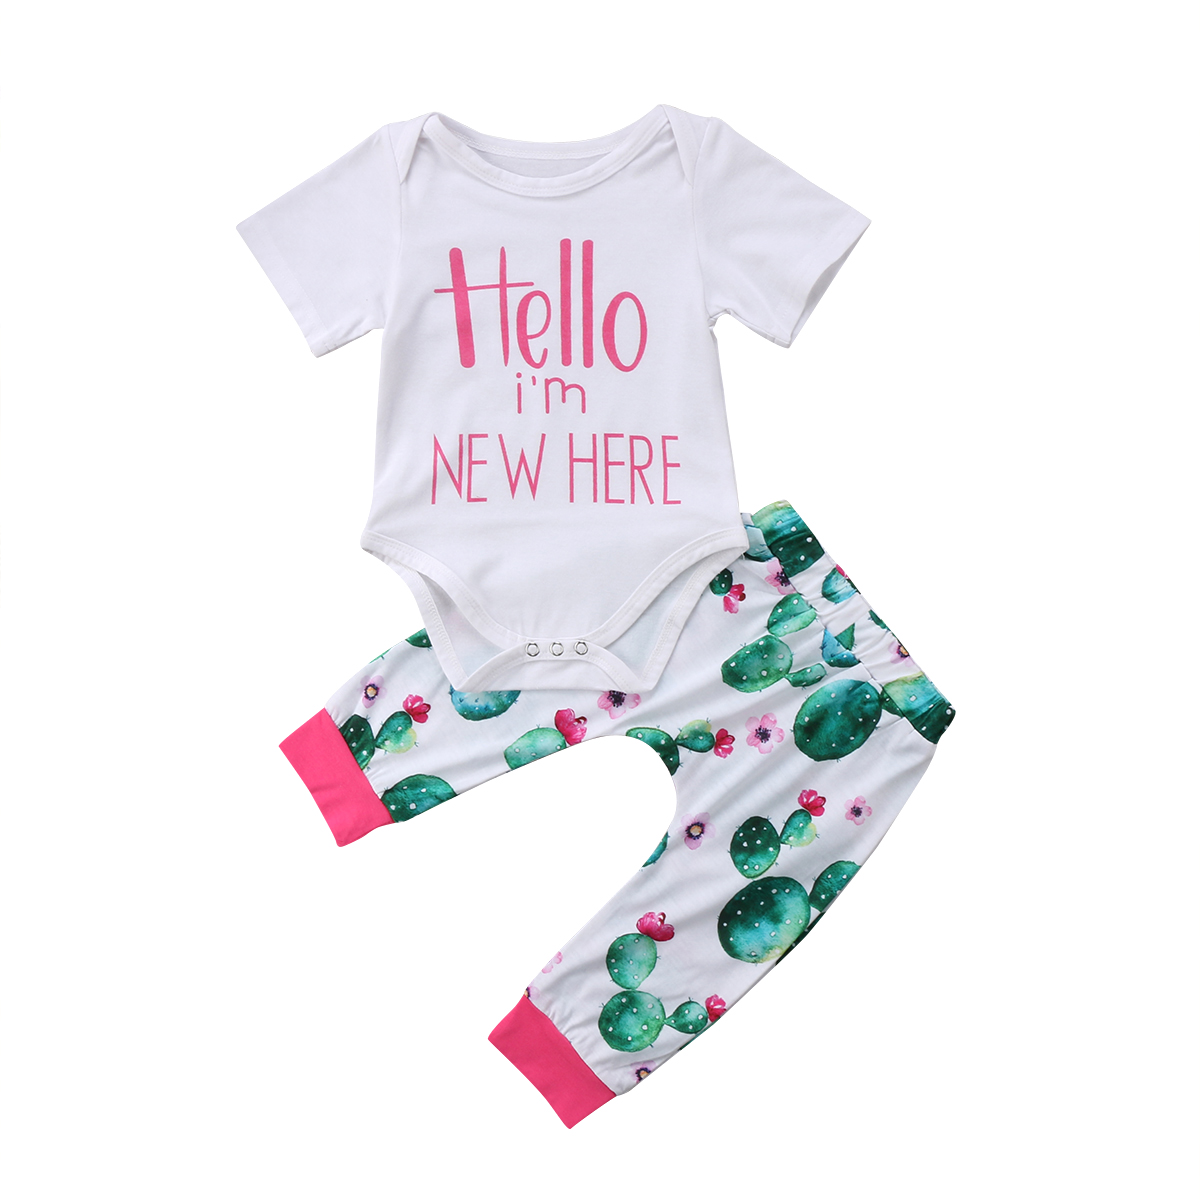 Lovely Newborn Baby Boy Girl Short Sleeve Tops Romper Cactus Print Long Pants 2Pcs Outfits Clothes